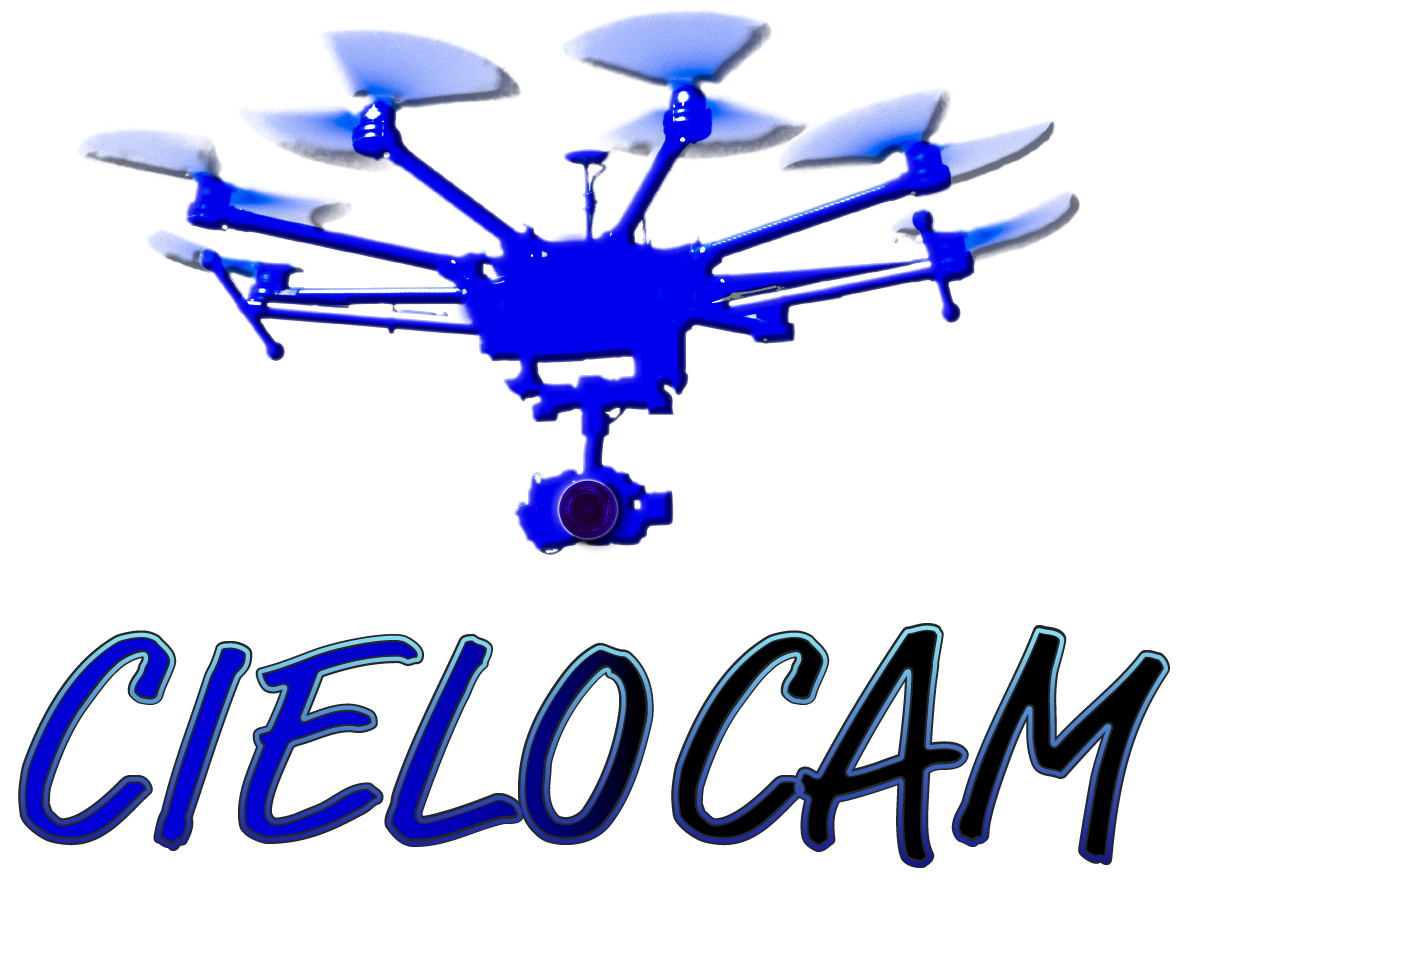 CieloCam.tv logo v1 white .tv.02800DRONEpsd.png